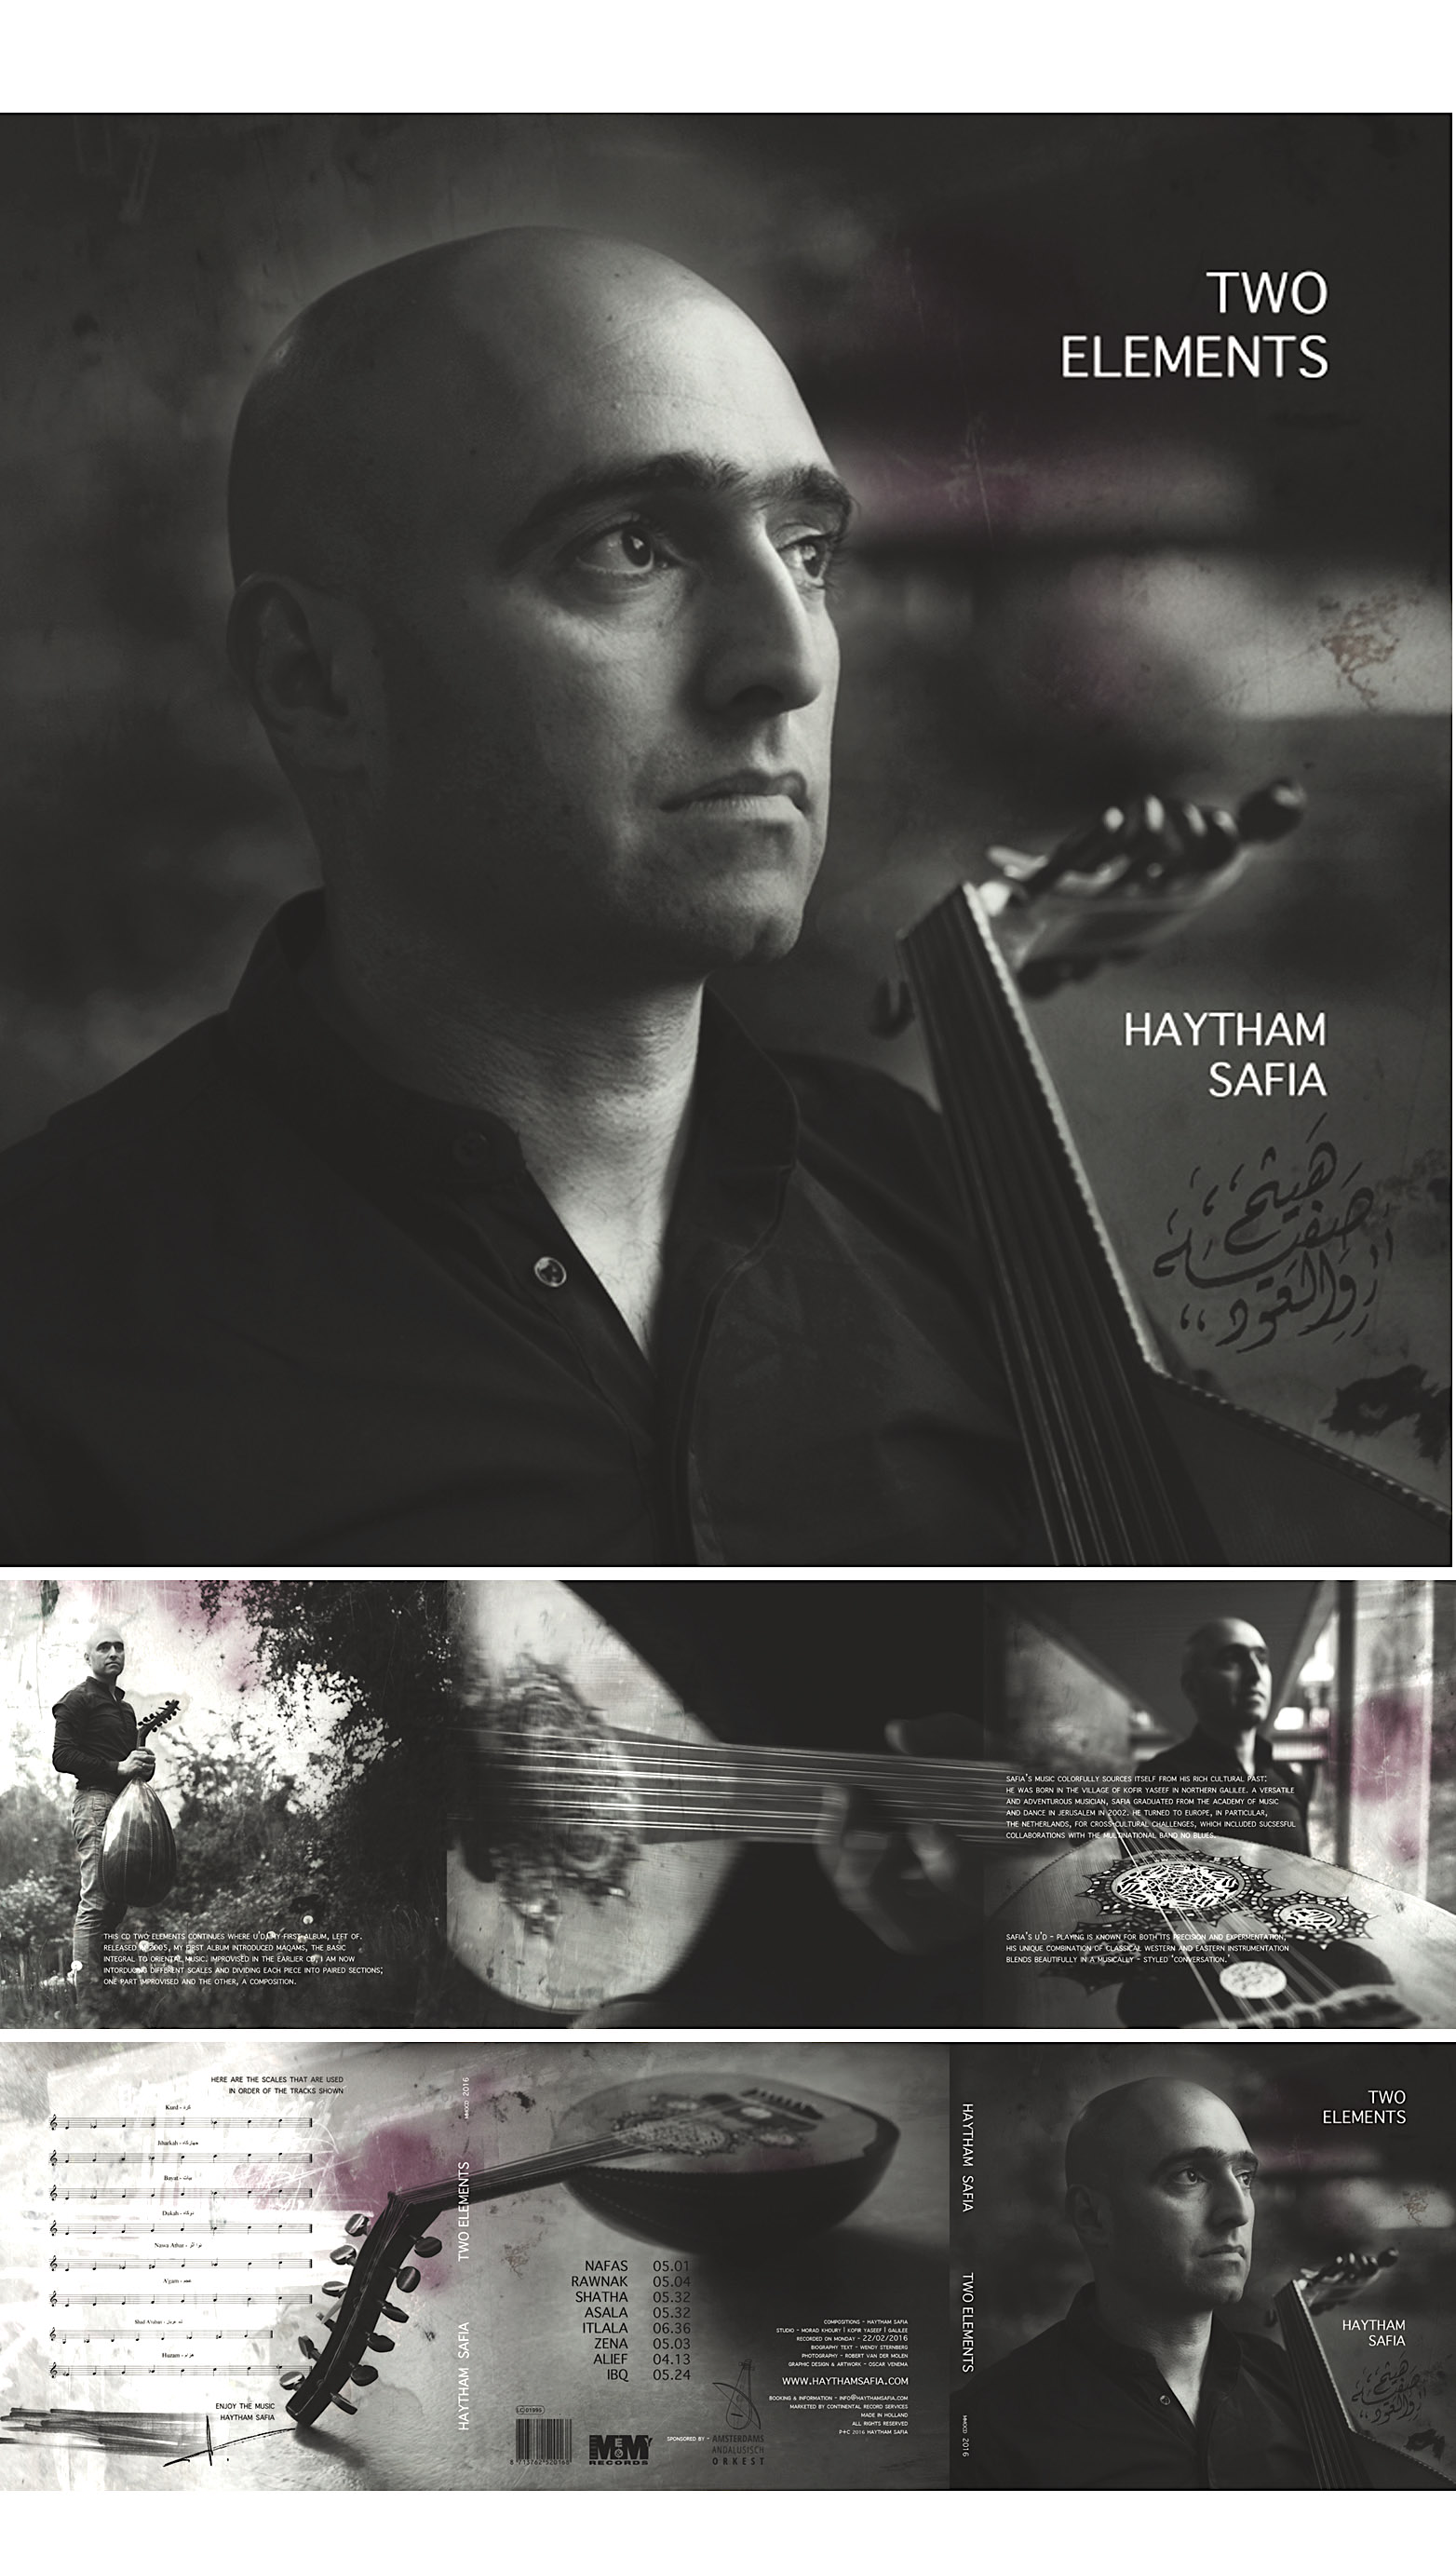 Haytham is an internationally renowned U'd player - long established himself as a talented composer with a well-full of innovative ideas, exemplifying his gift for composition  _